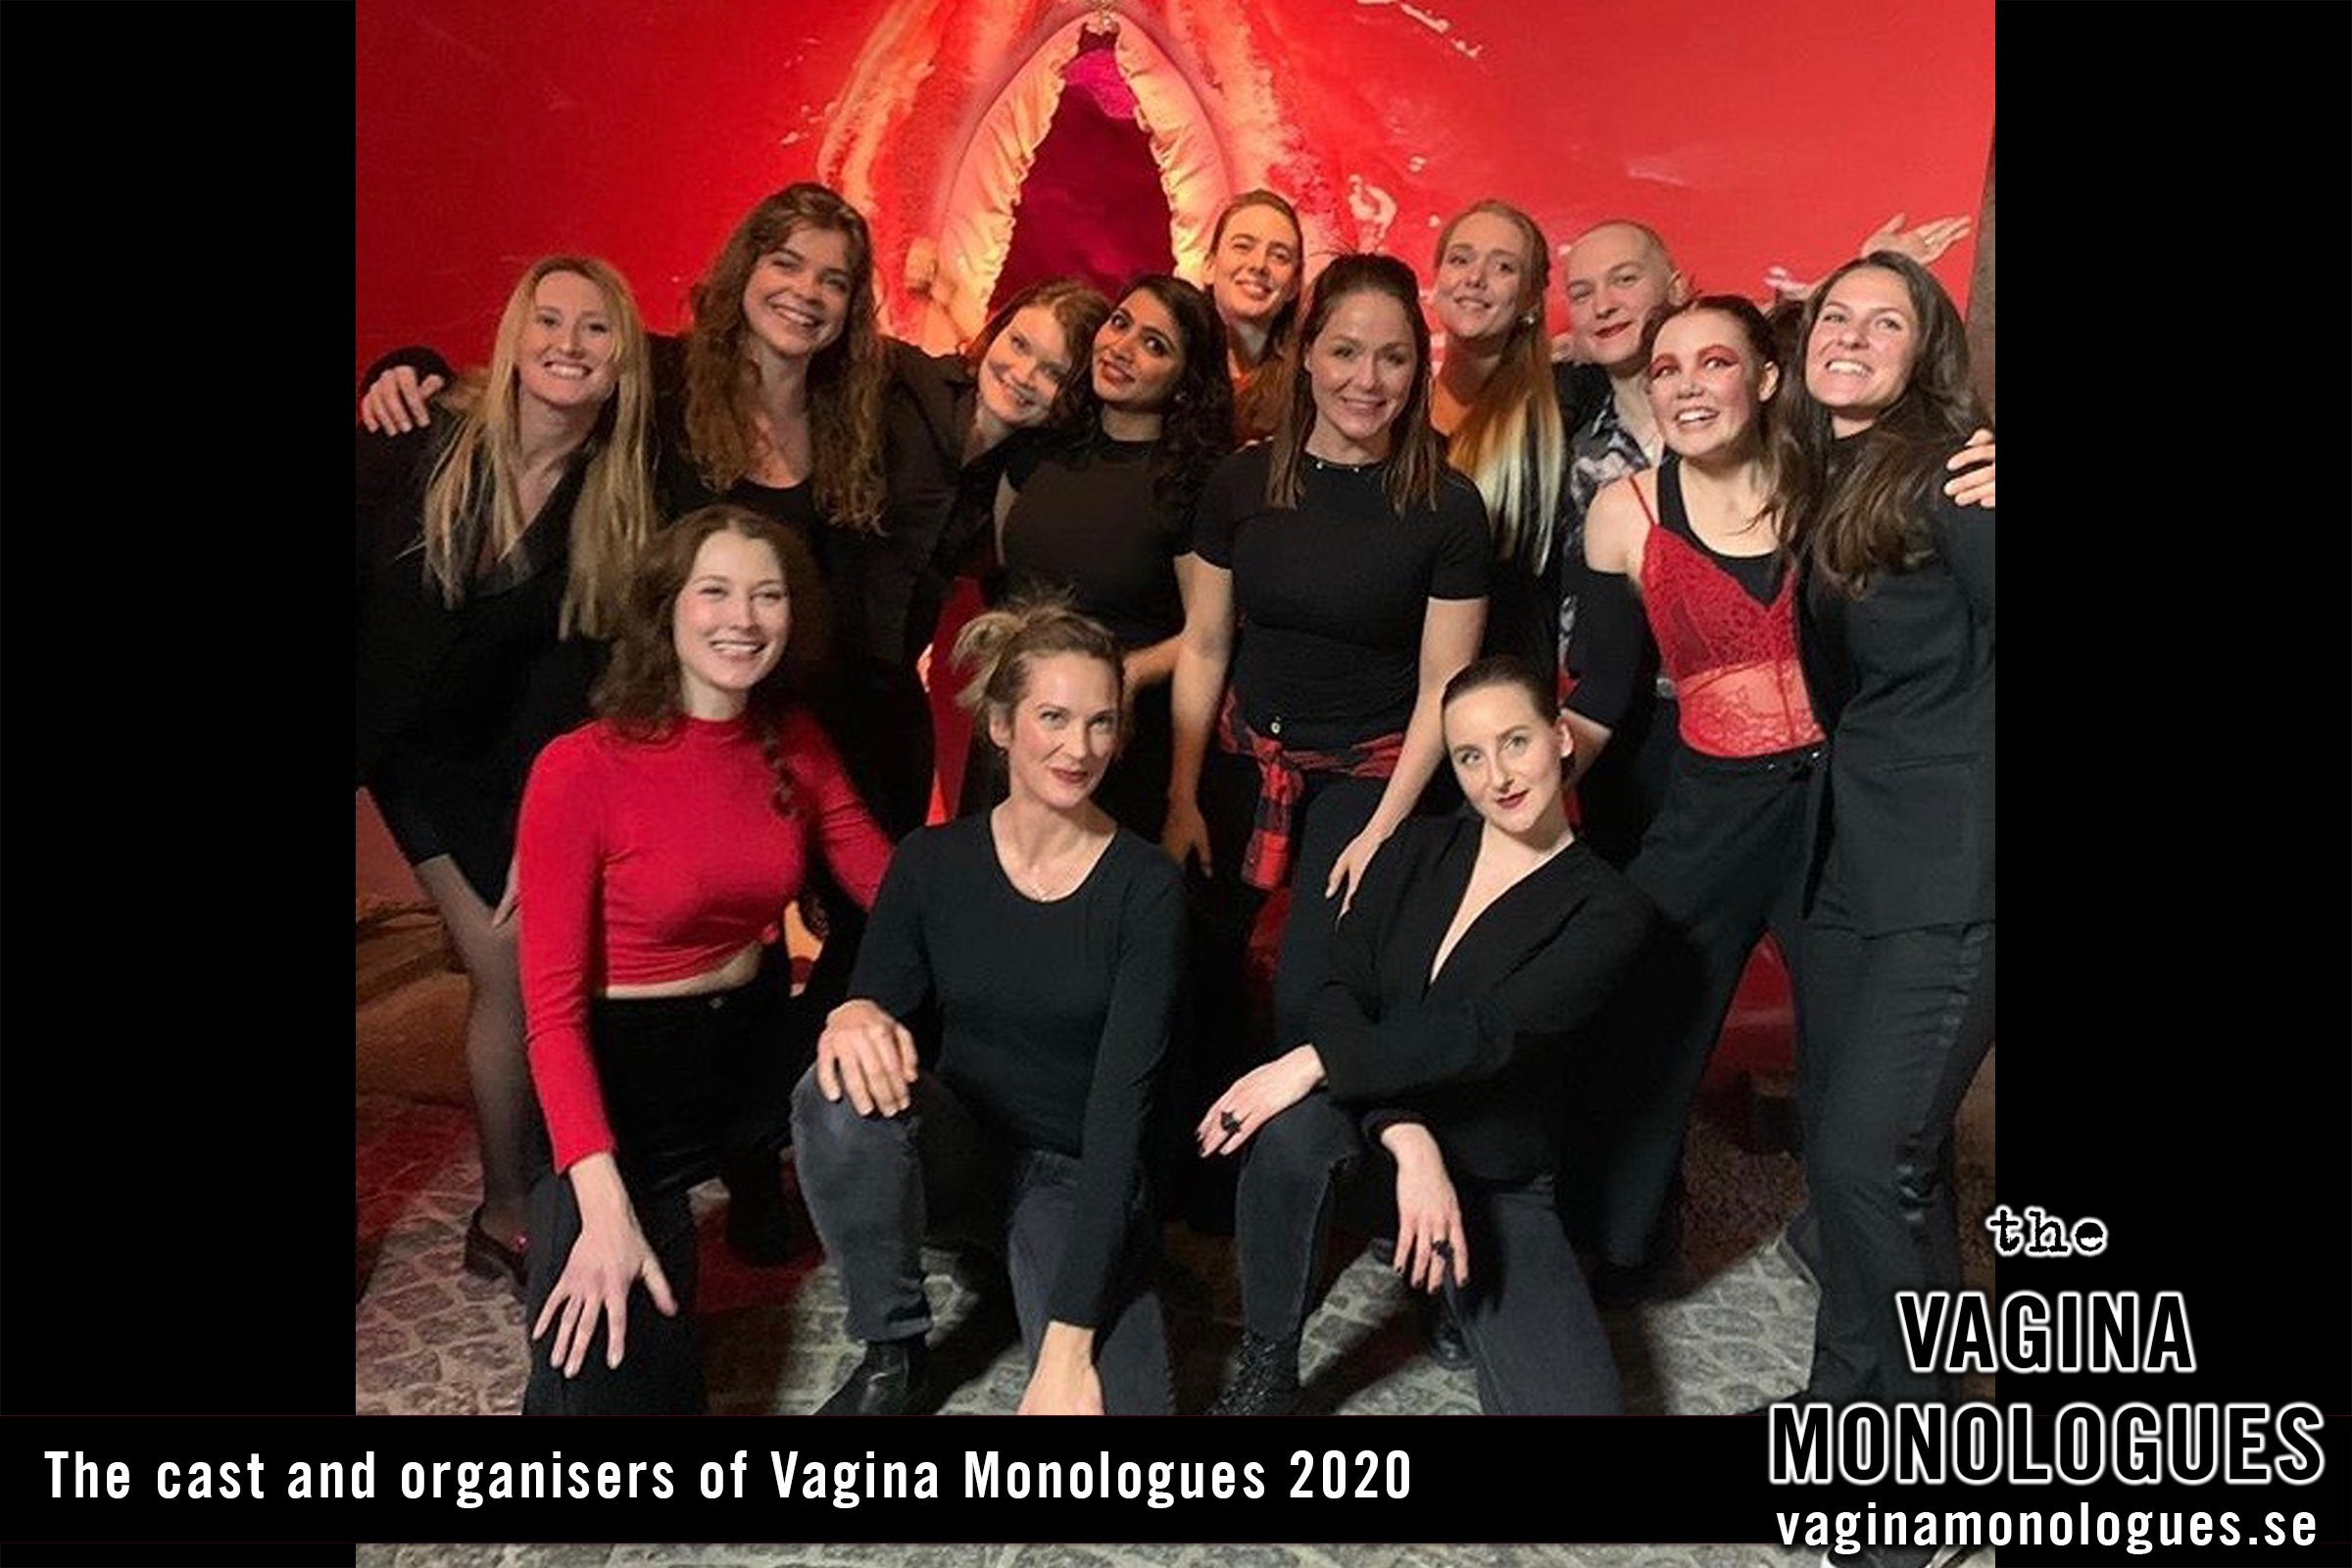 The cast and organisers of Vagina Monologues 2020